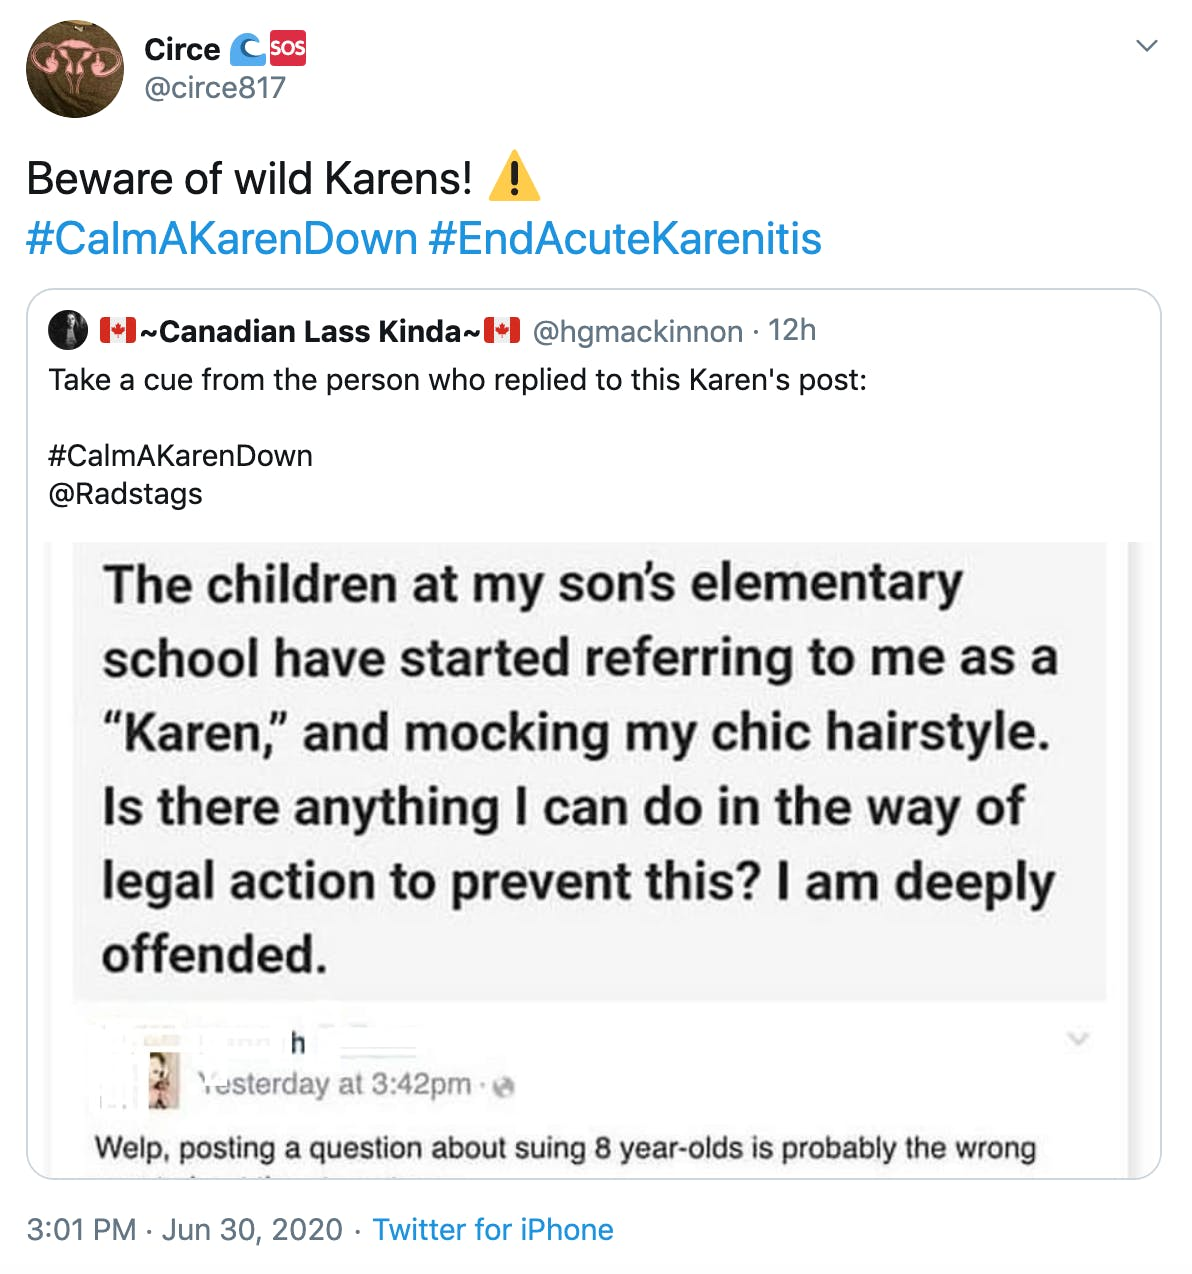 """Beware of wild Karens! Warning sign"" over screenshot of post where woman asks how she can stop local school children calling her Karen and mocking her 'chic' hair"